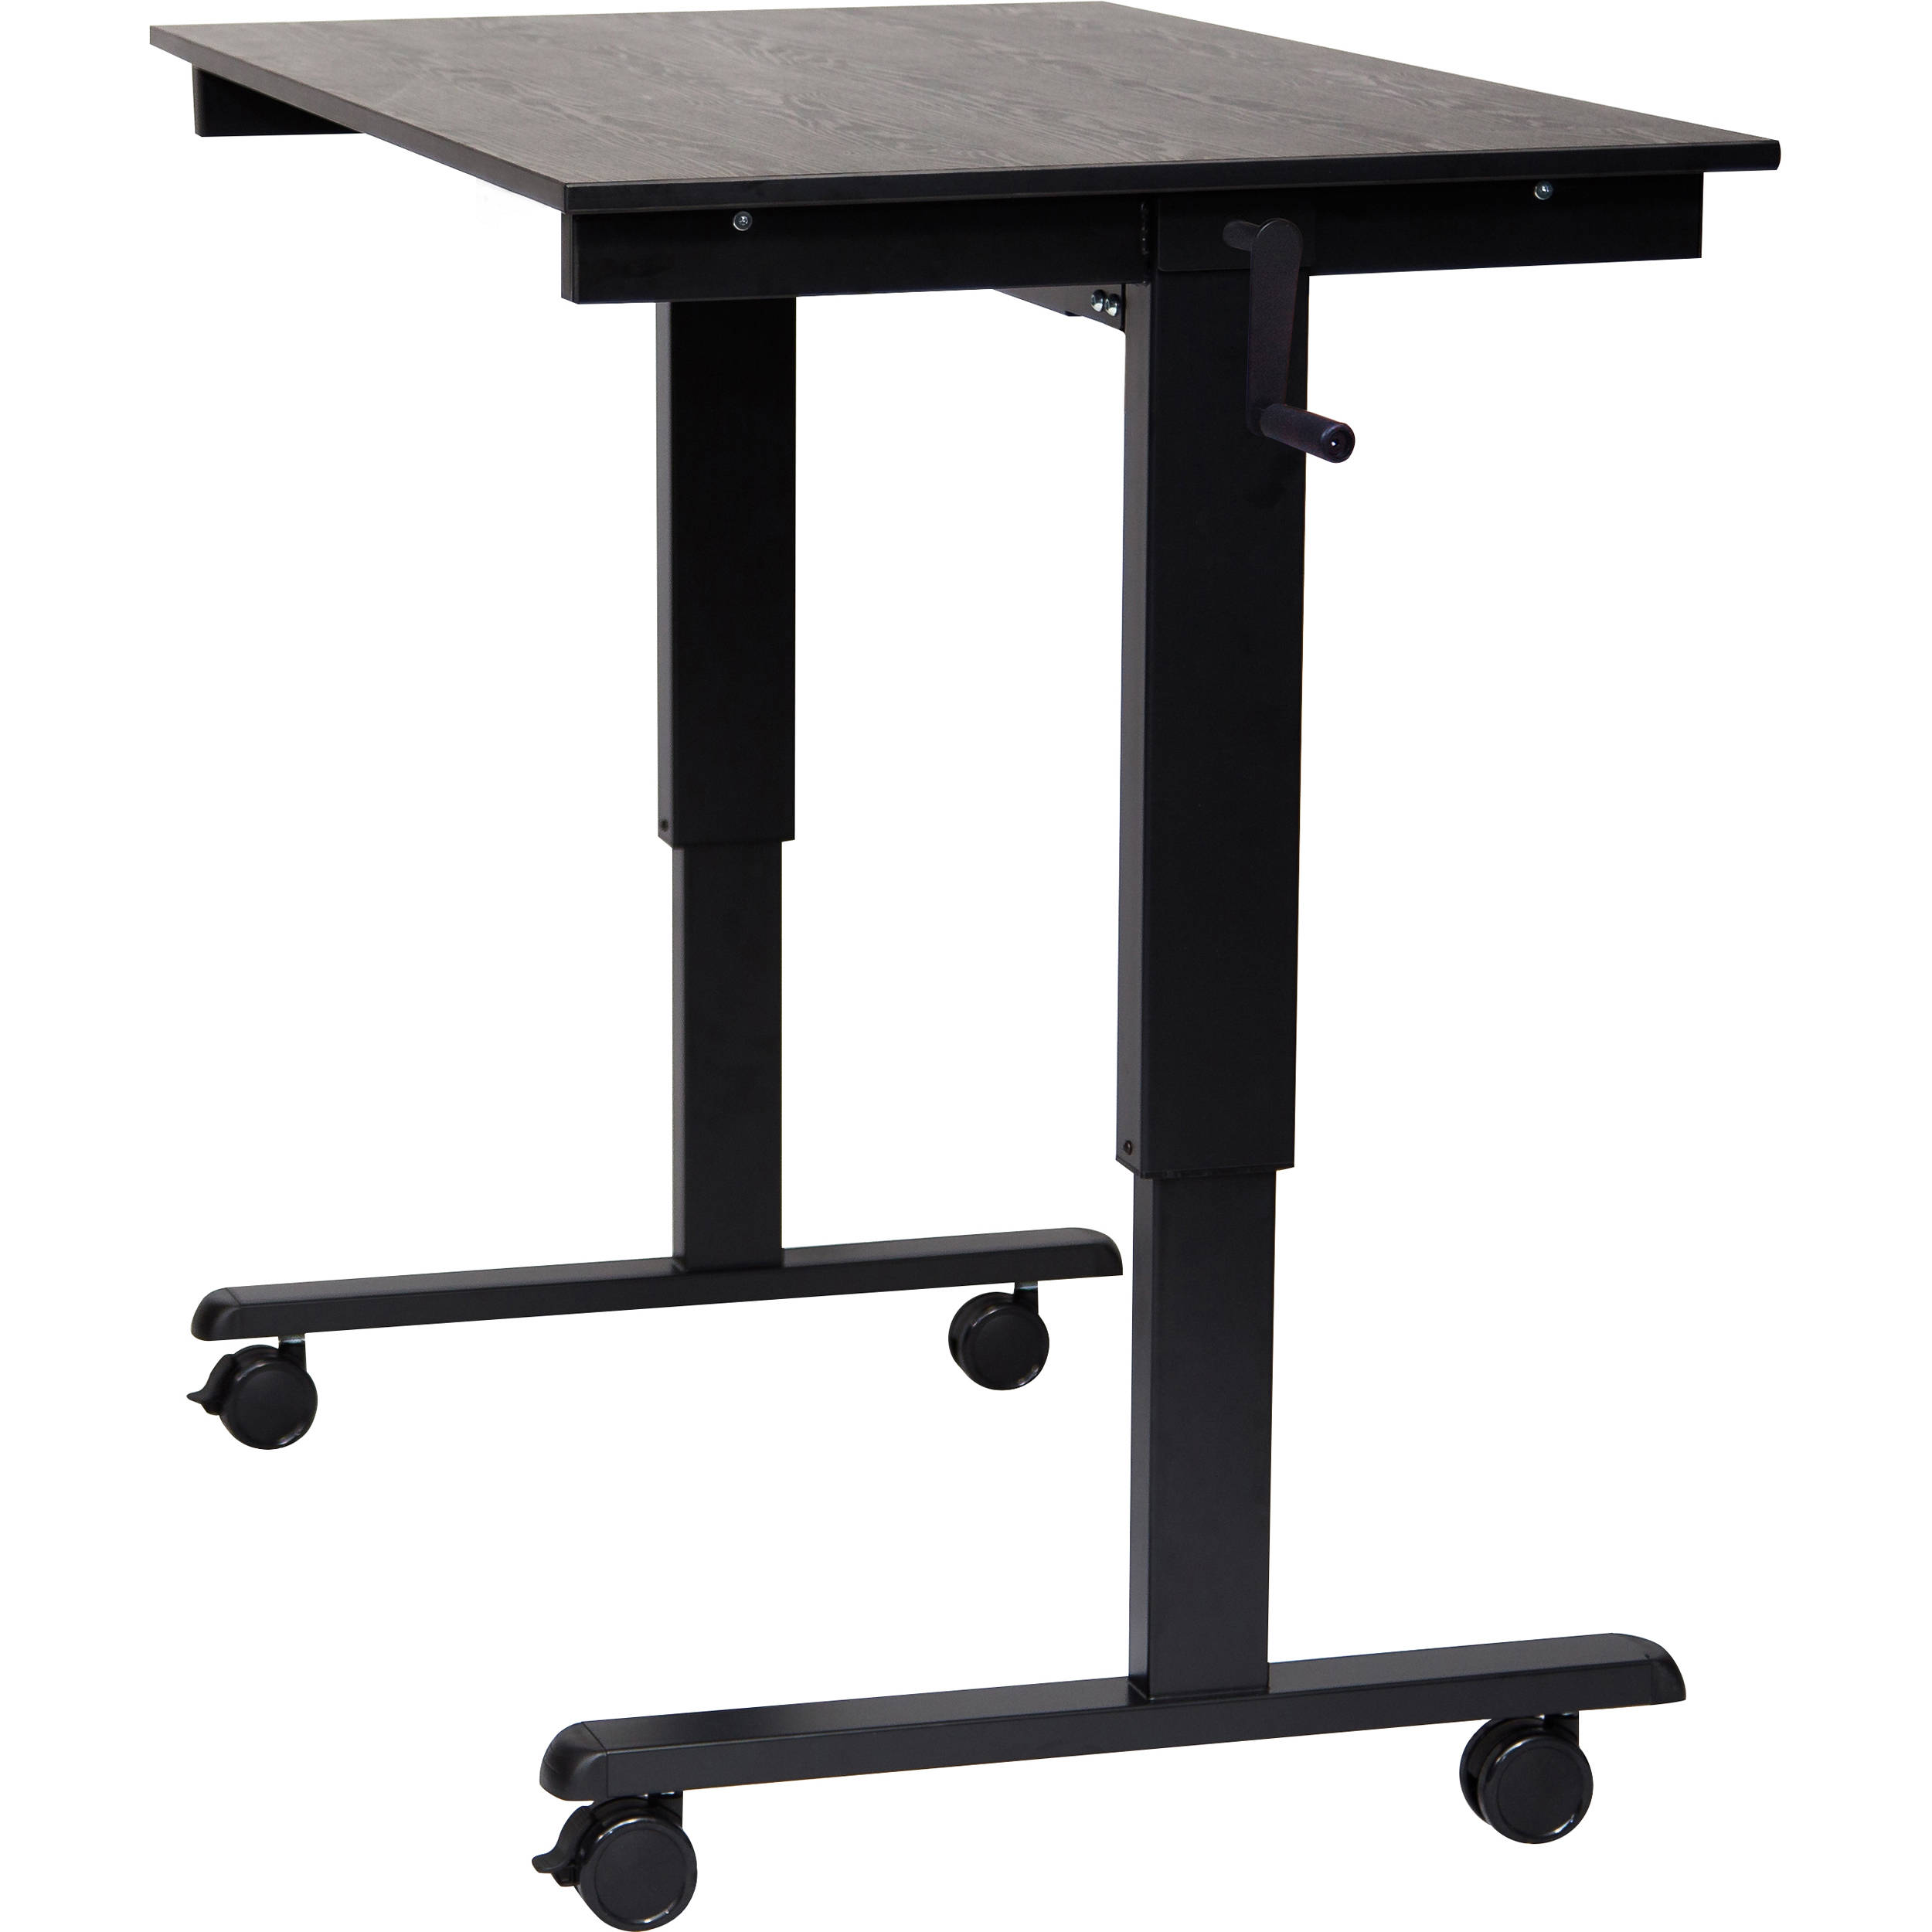 Luxor 48 crank adjustable stand up desk black oak desk black frame